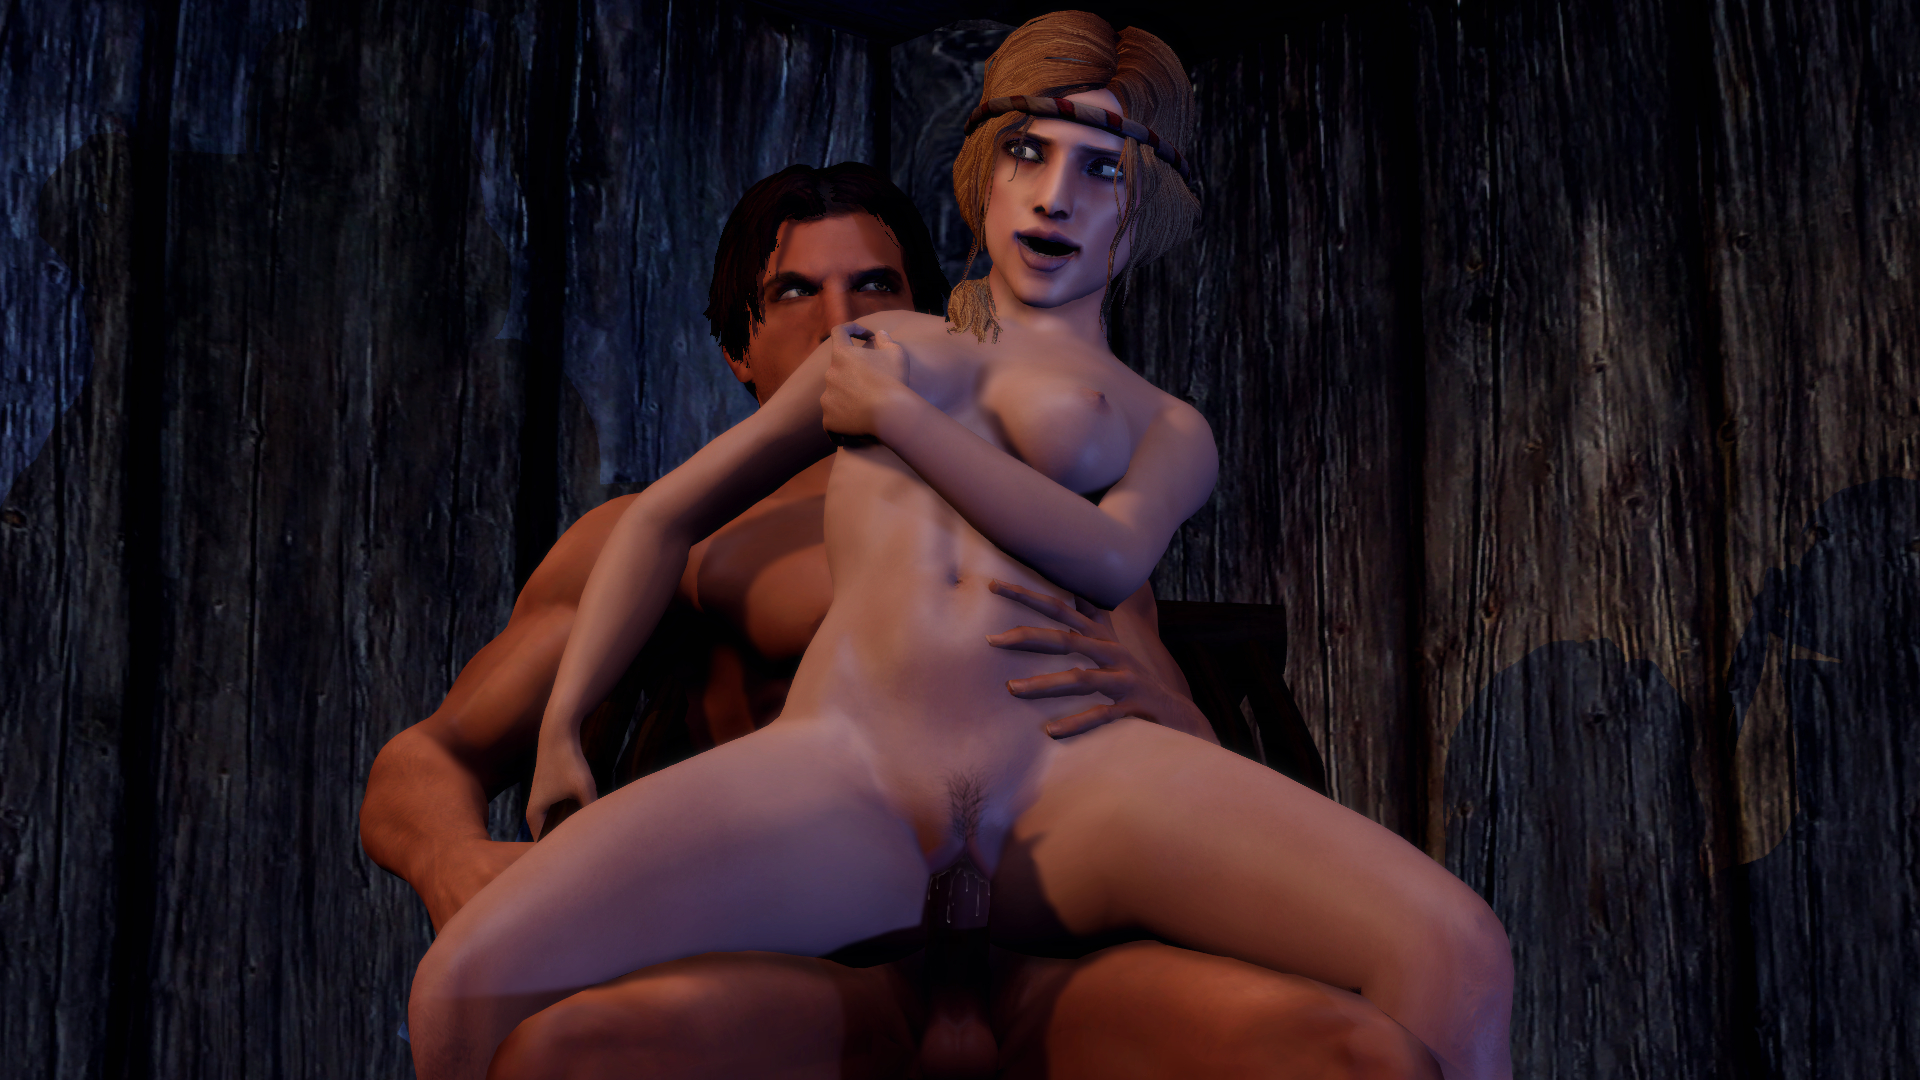 Assassins creed naked porn nudes toons